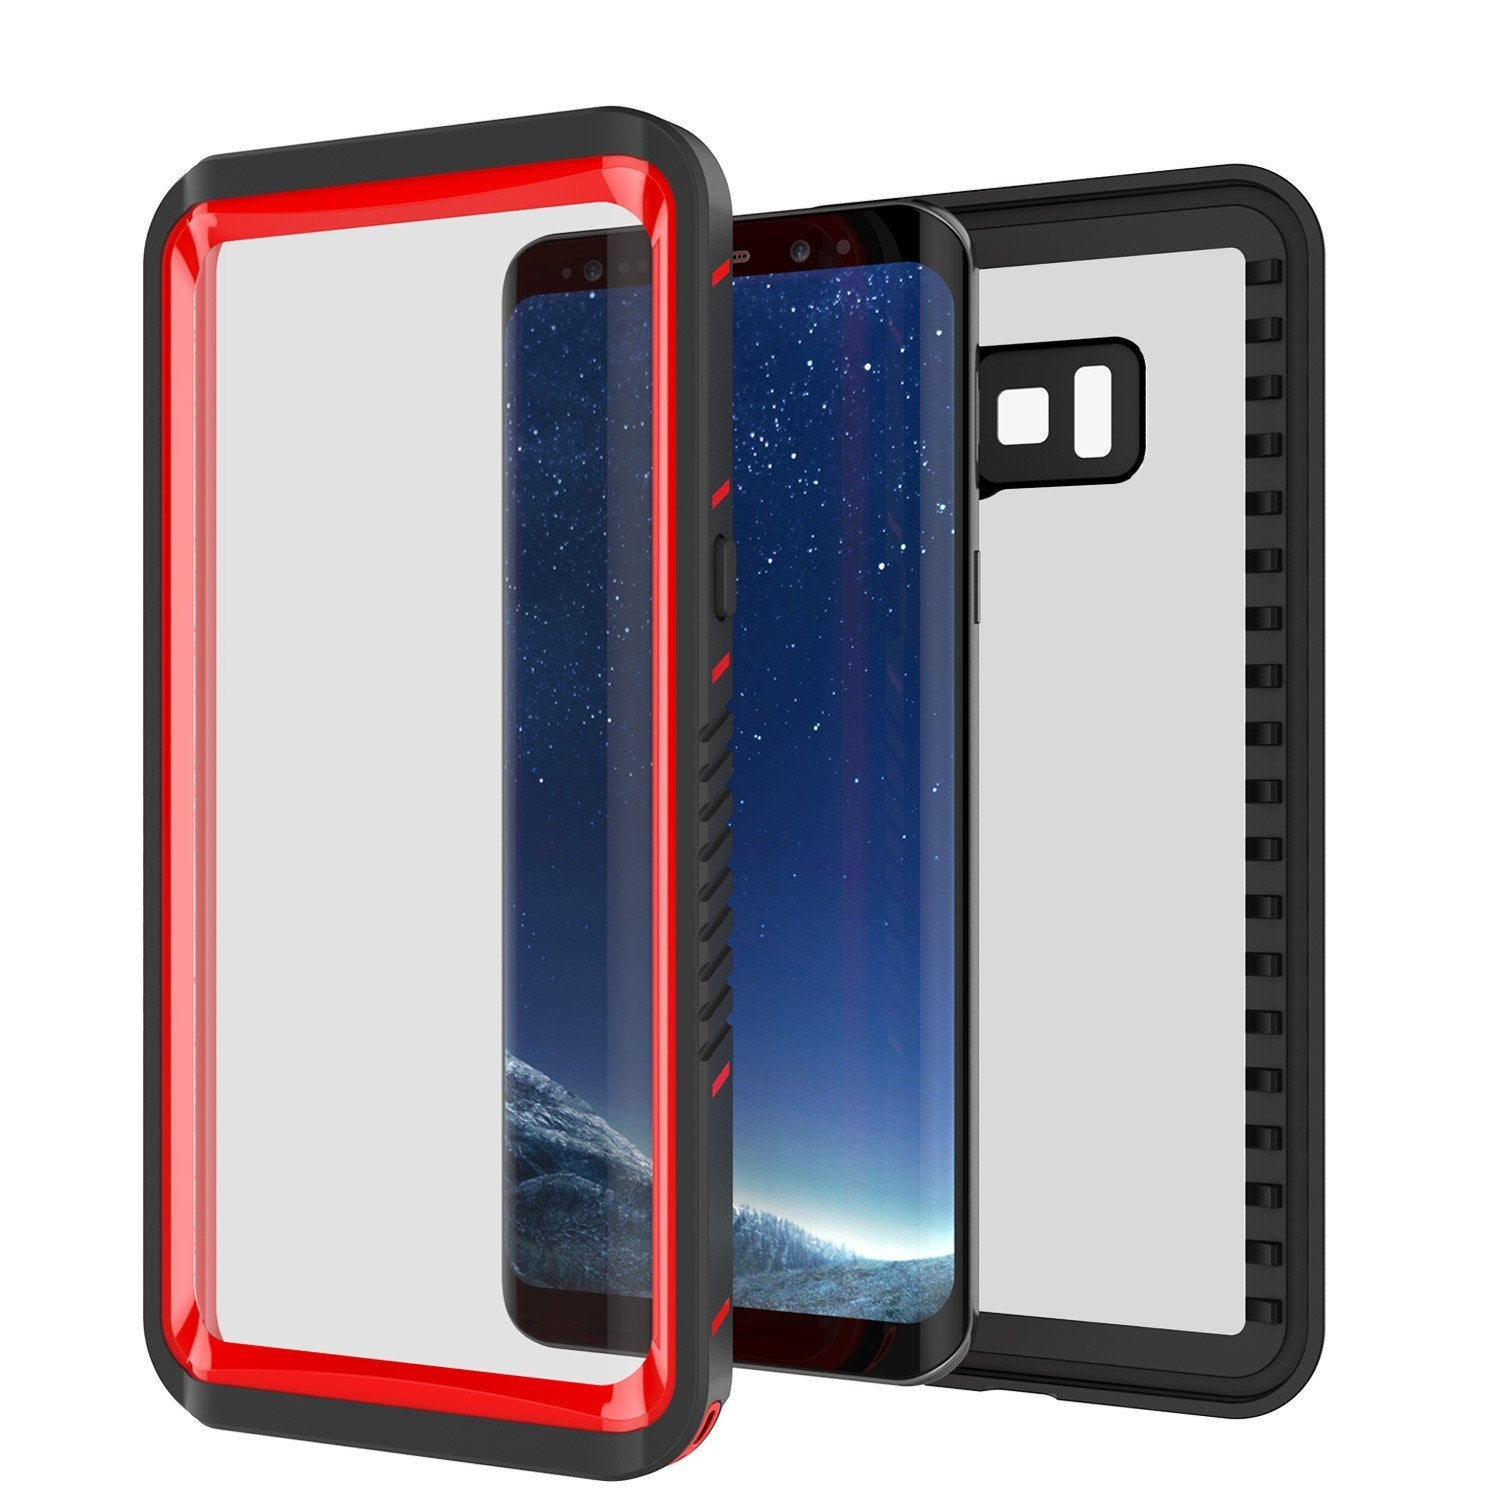 Galaxy S8 Case, Punkcase [Extreme Series] Armor Red Cover